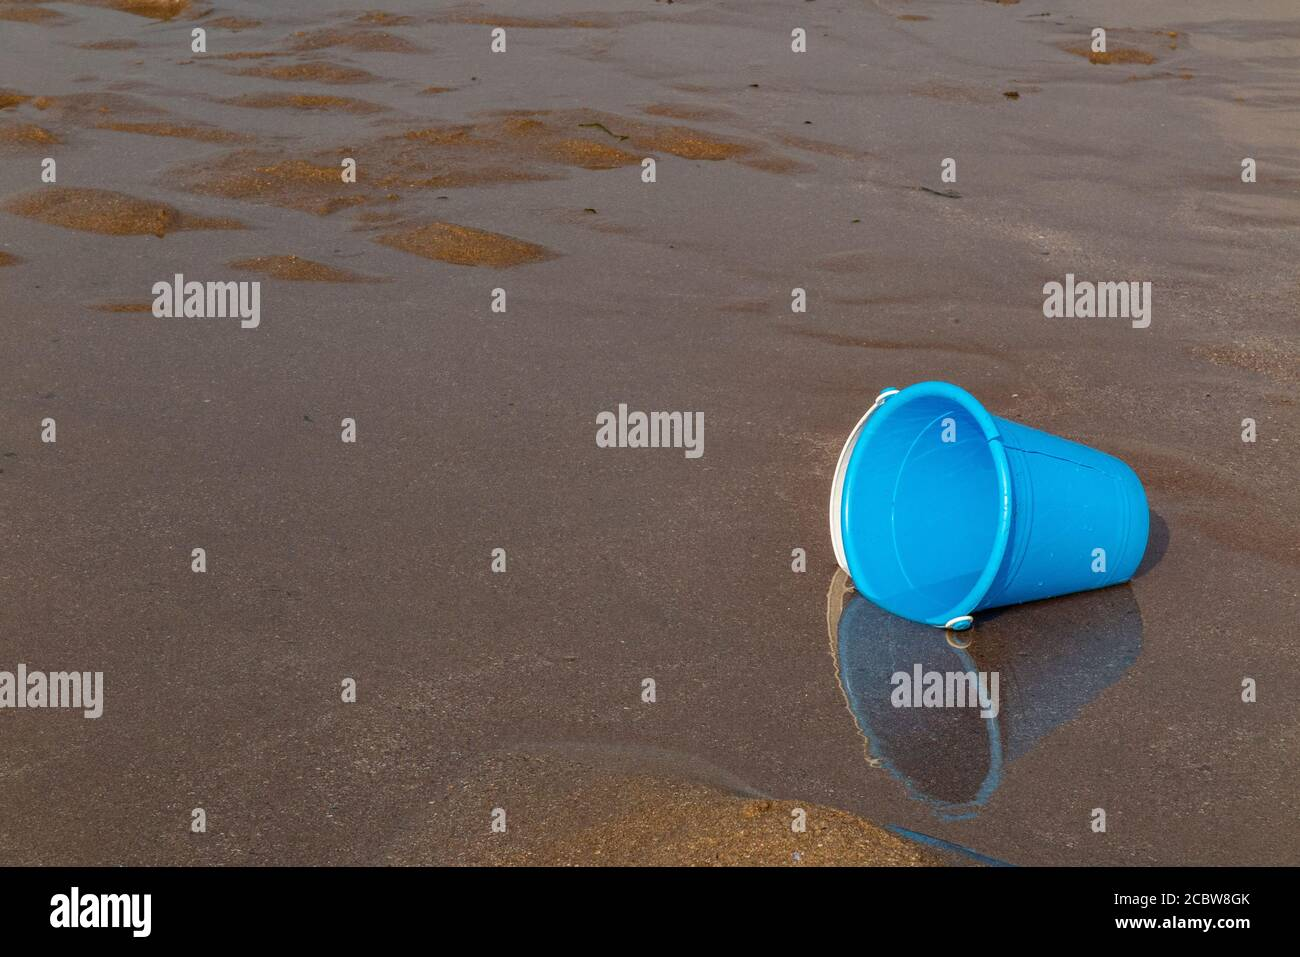 A child's plastic bucket abandoned on a beach Stock Photo